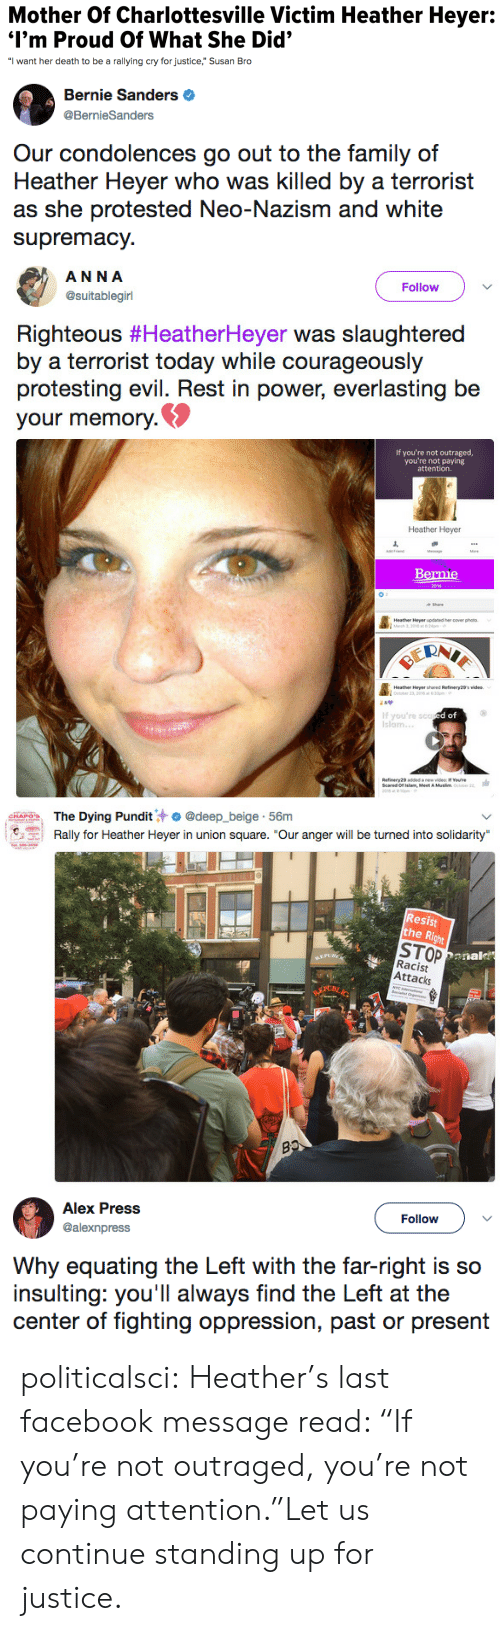 "Donal: Mother Of Charlottesville Victim Heather Heyer:  I'm Proud Of What She Did'  ""I want her death to be a rallying cry for justice,"" Susan Bro   Bernie Sanders  @BernieSanders  Our condolences go out to the family of  Heather Heyer who was killed by a terrorist  as she protested Neo-Nazism and white  supremacy.   ANNA  @suitablegirl  Follow  Righteous #HeatherHeyer was slaughtered  by a terrorist today while courageously  protesting evil. Rest in power, everlasting be  your memory.  If you're not outraged,  you're not paying  attention.  Heather Heyer  Bernie  Heathee Heyer updaned ercover phs  If you're sco  Islam.  d of  slam, Meet A   The Dying Pundit汁. @deep.-beige-56m  Rally for Heather Heyer in union square. ""Our anger will be turned into solidarity  emarin.  Resist  he R  STOP  Racist  Attacks  Donal   Alex Press  @alexnpress  Follow  Why equating the Left with the far-right is so  insulting: you'll always find the Left at the  center of fighting oppression, past or present politicalsci:  Heather's last facebook message read: ""If you're not outraged, you're not paying attention.""Let us continue standing up for justice."